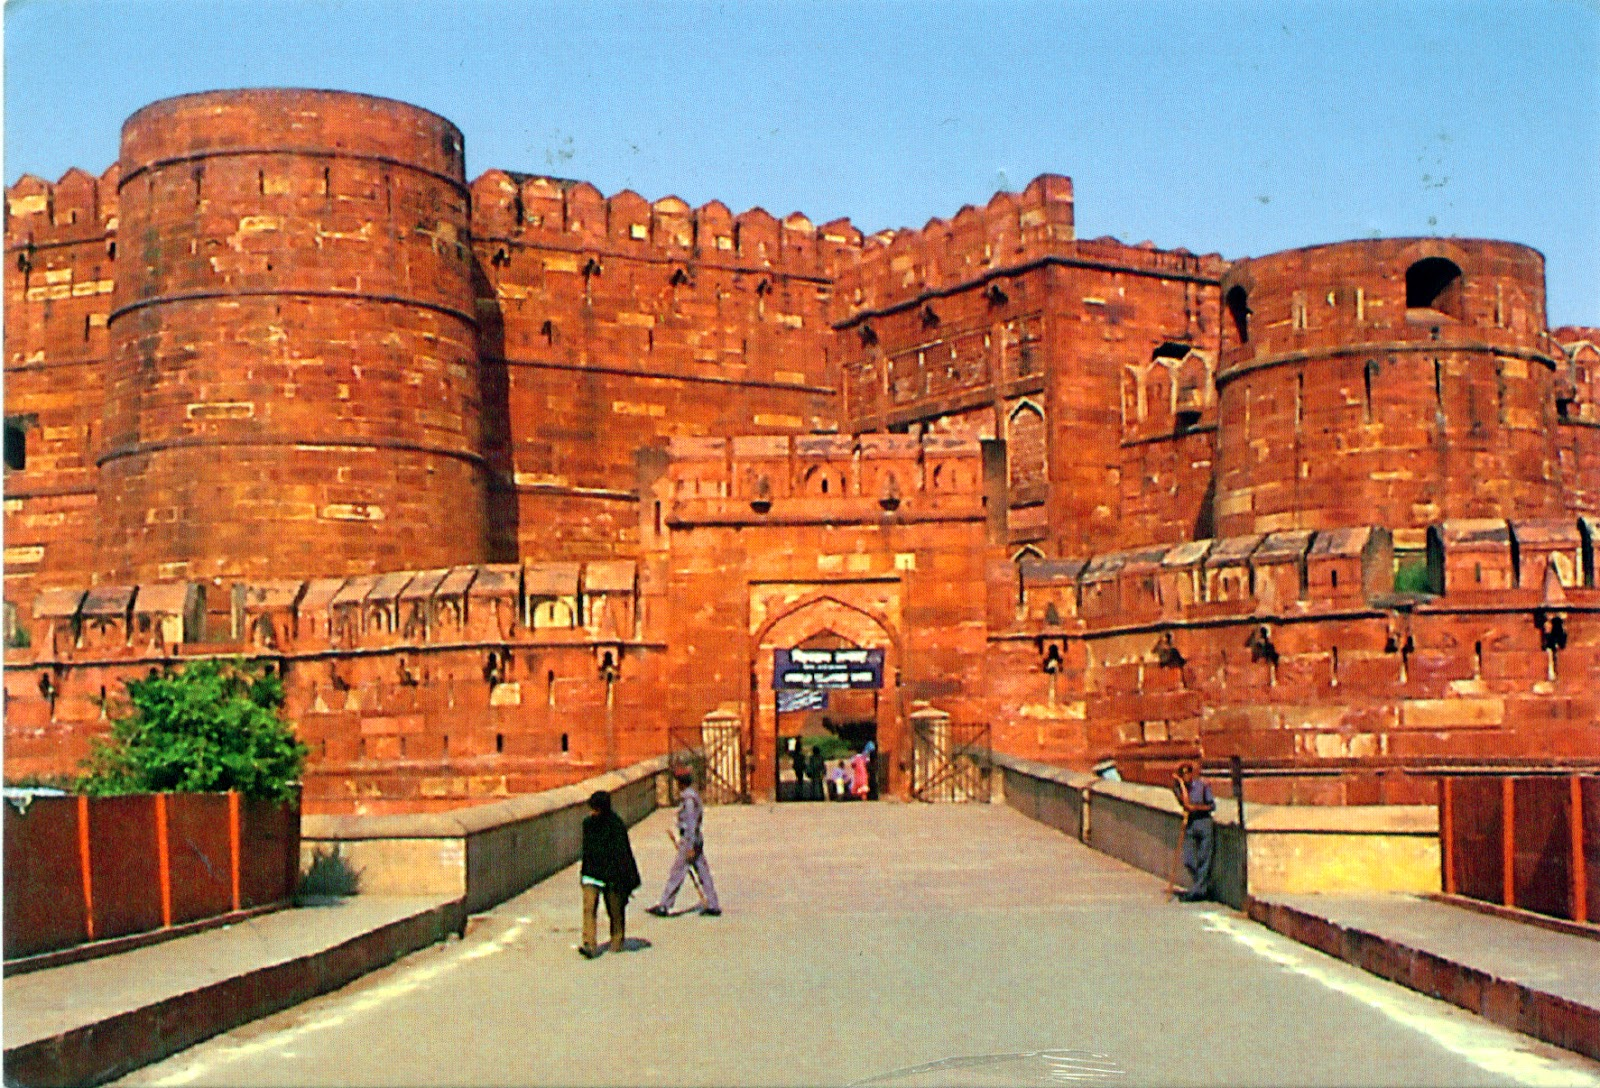 Agra India  city pictures gallery : ... TO MY HOME!: 0349, 1217 INDIA Uttar Pradesh Agra Fort UNESCO WHS